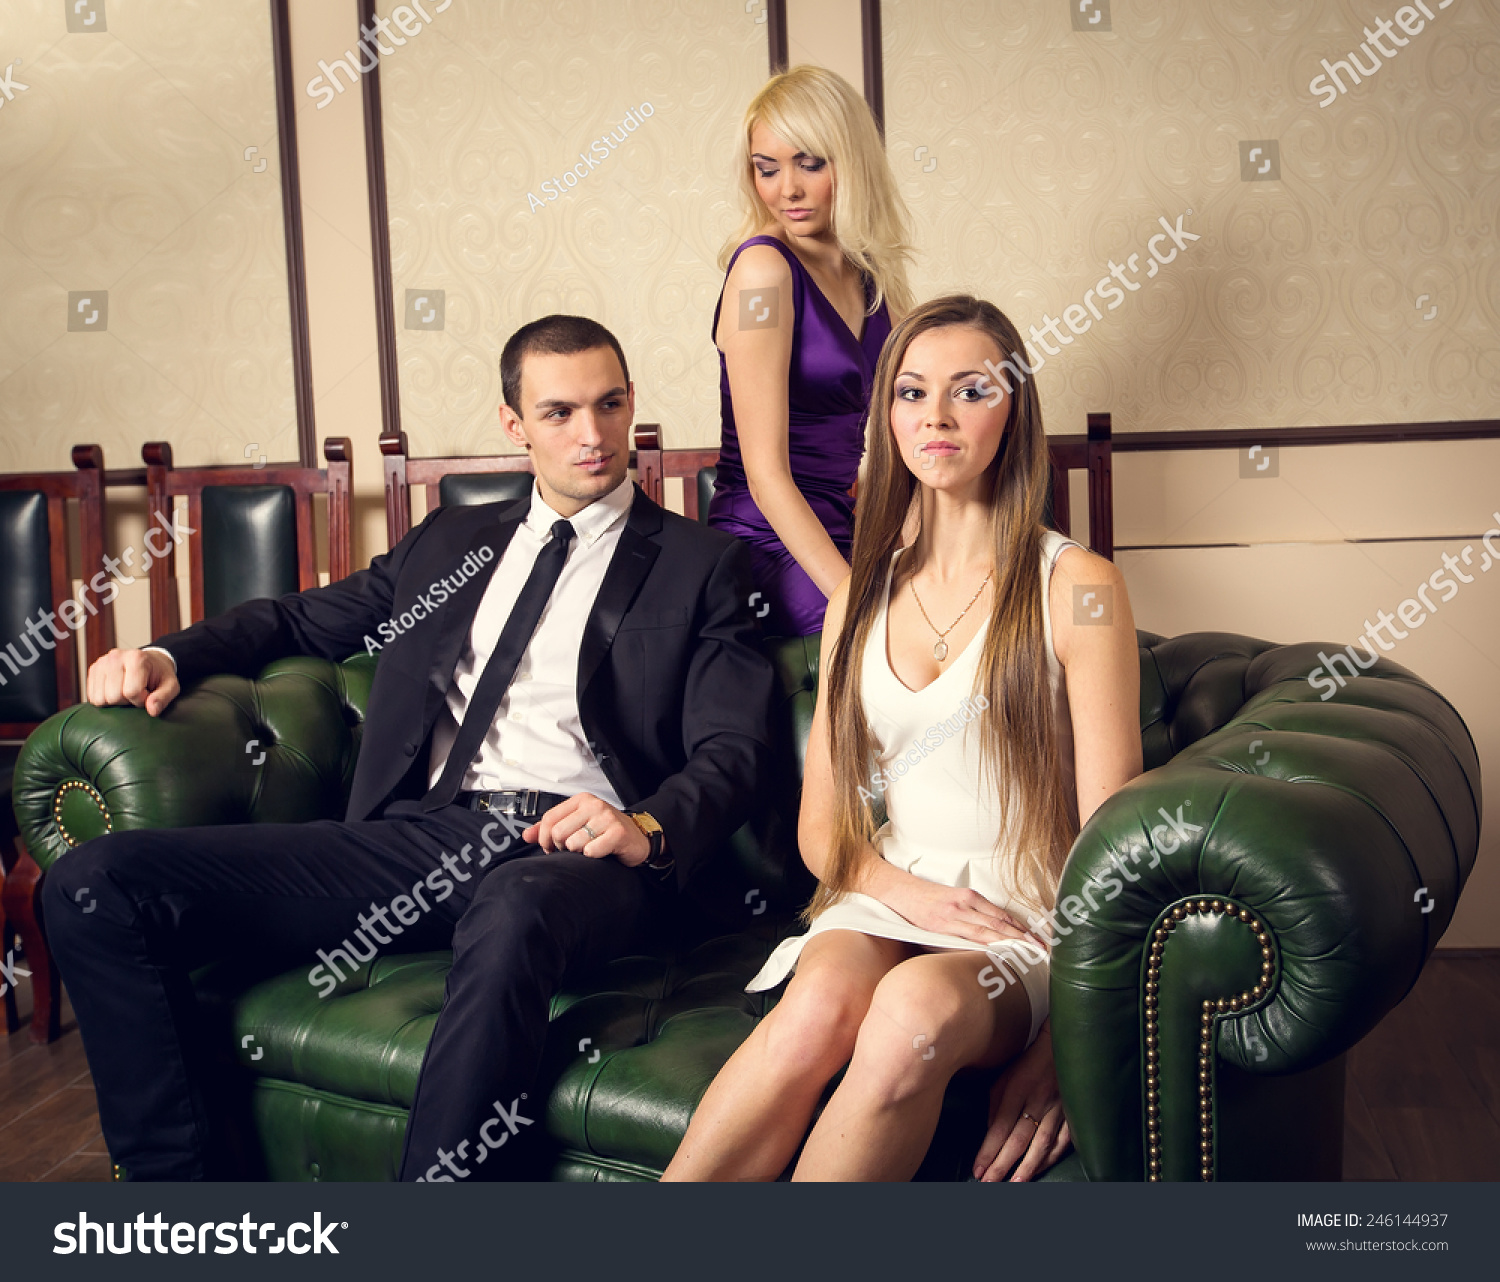 Man dating two women